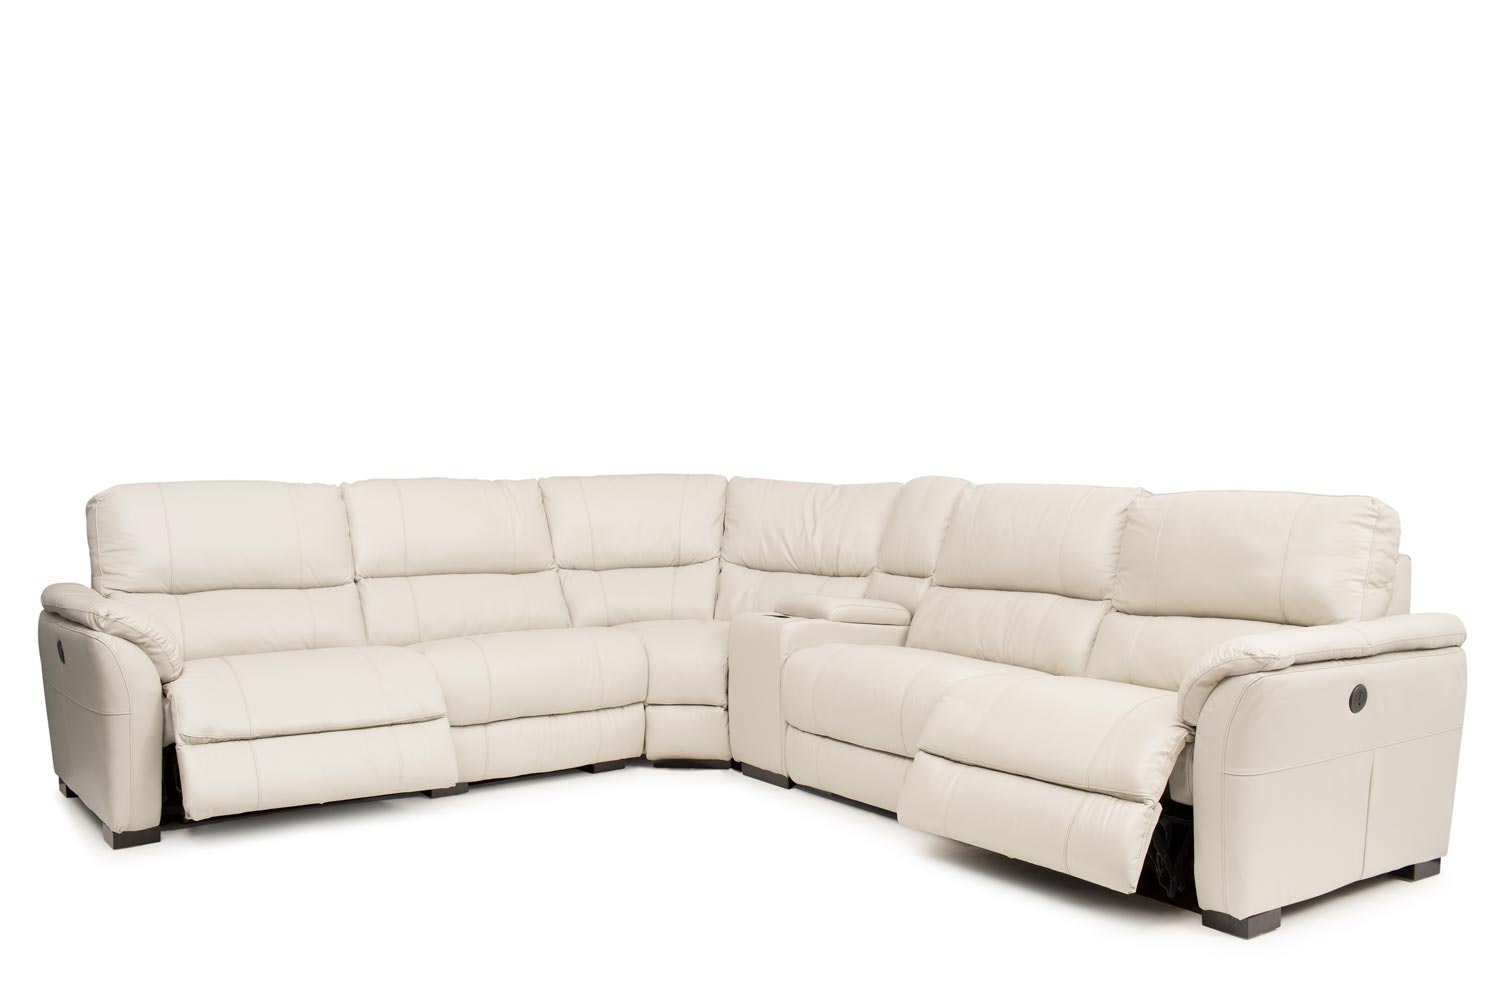 Skylar Electric Recliner Corner Sofa